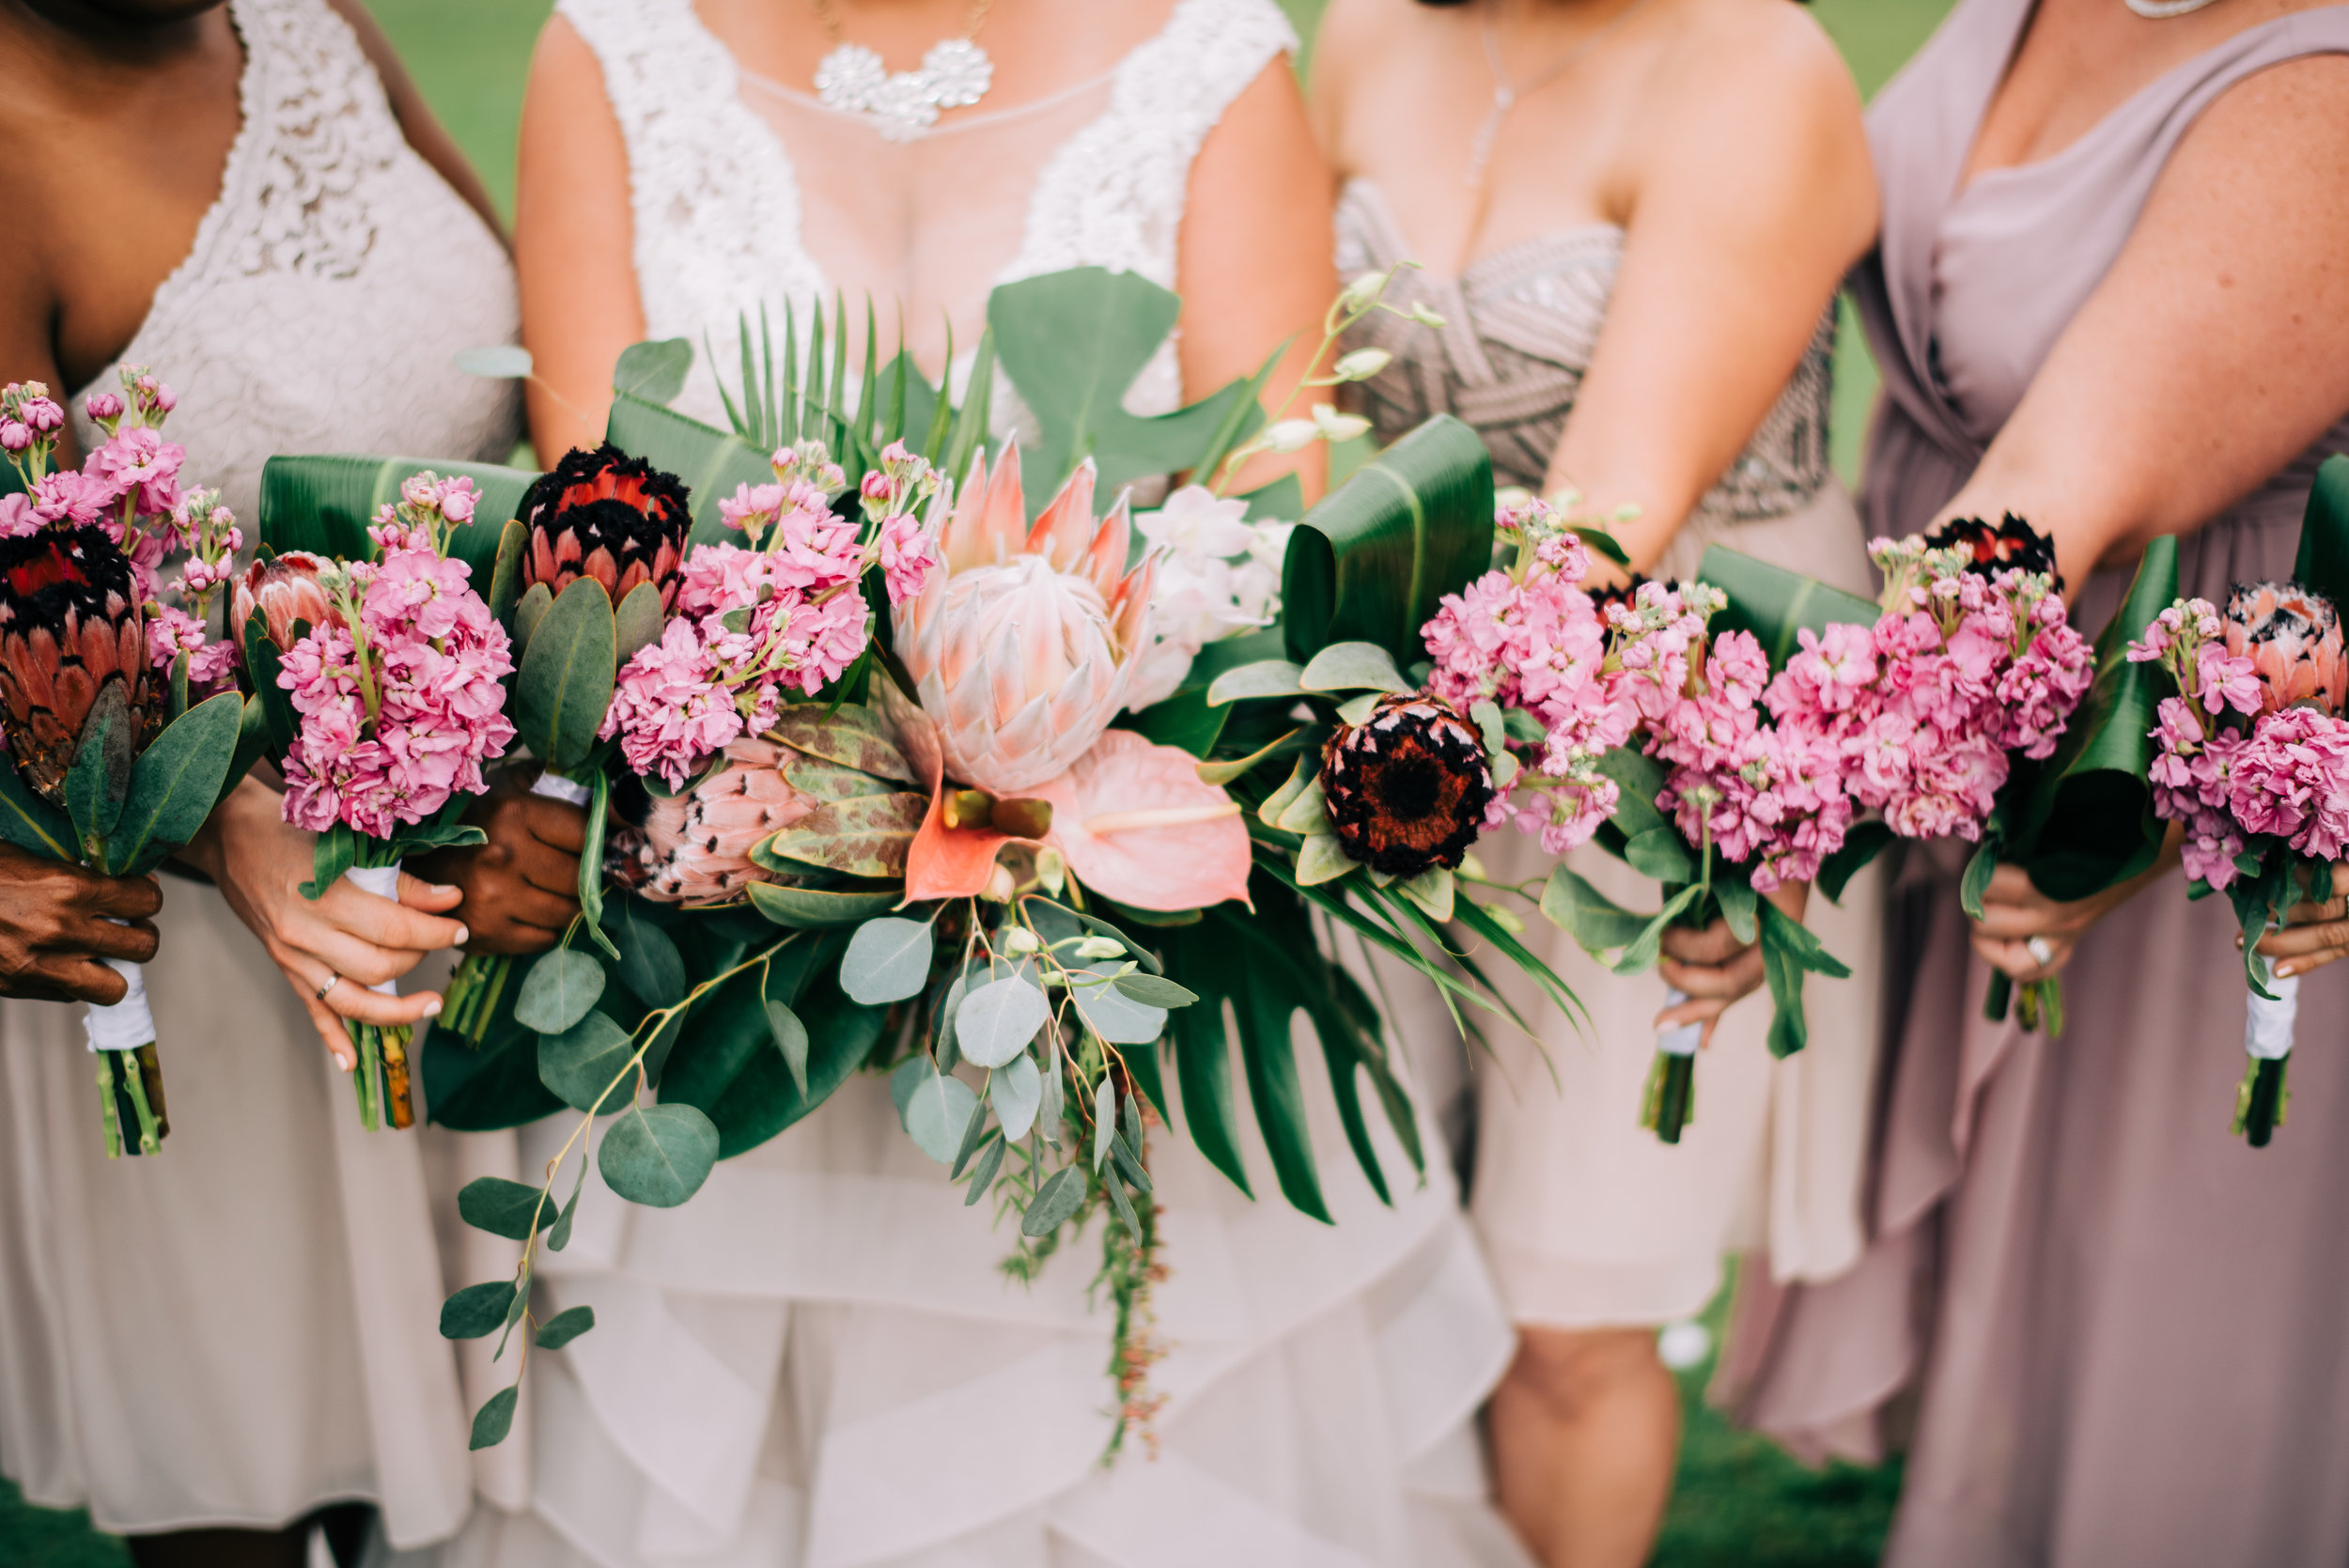 17 bride bouquet tropical flower bouquet bridesmaid bouquet shades of pink bouquet hand tied simple bouquet pink stock tropical leaves bouquet Life Design Events photos by Josh Snyder Photography.jpg